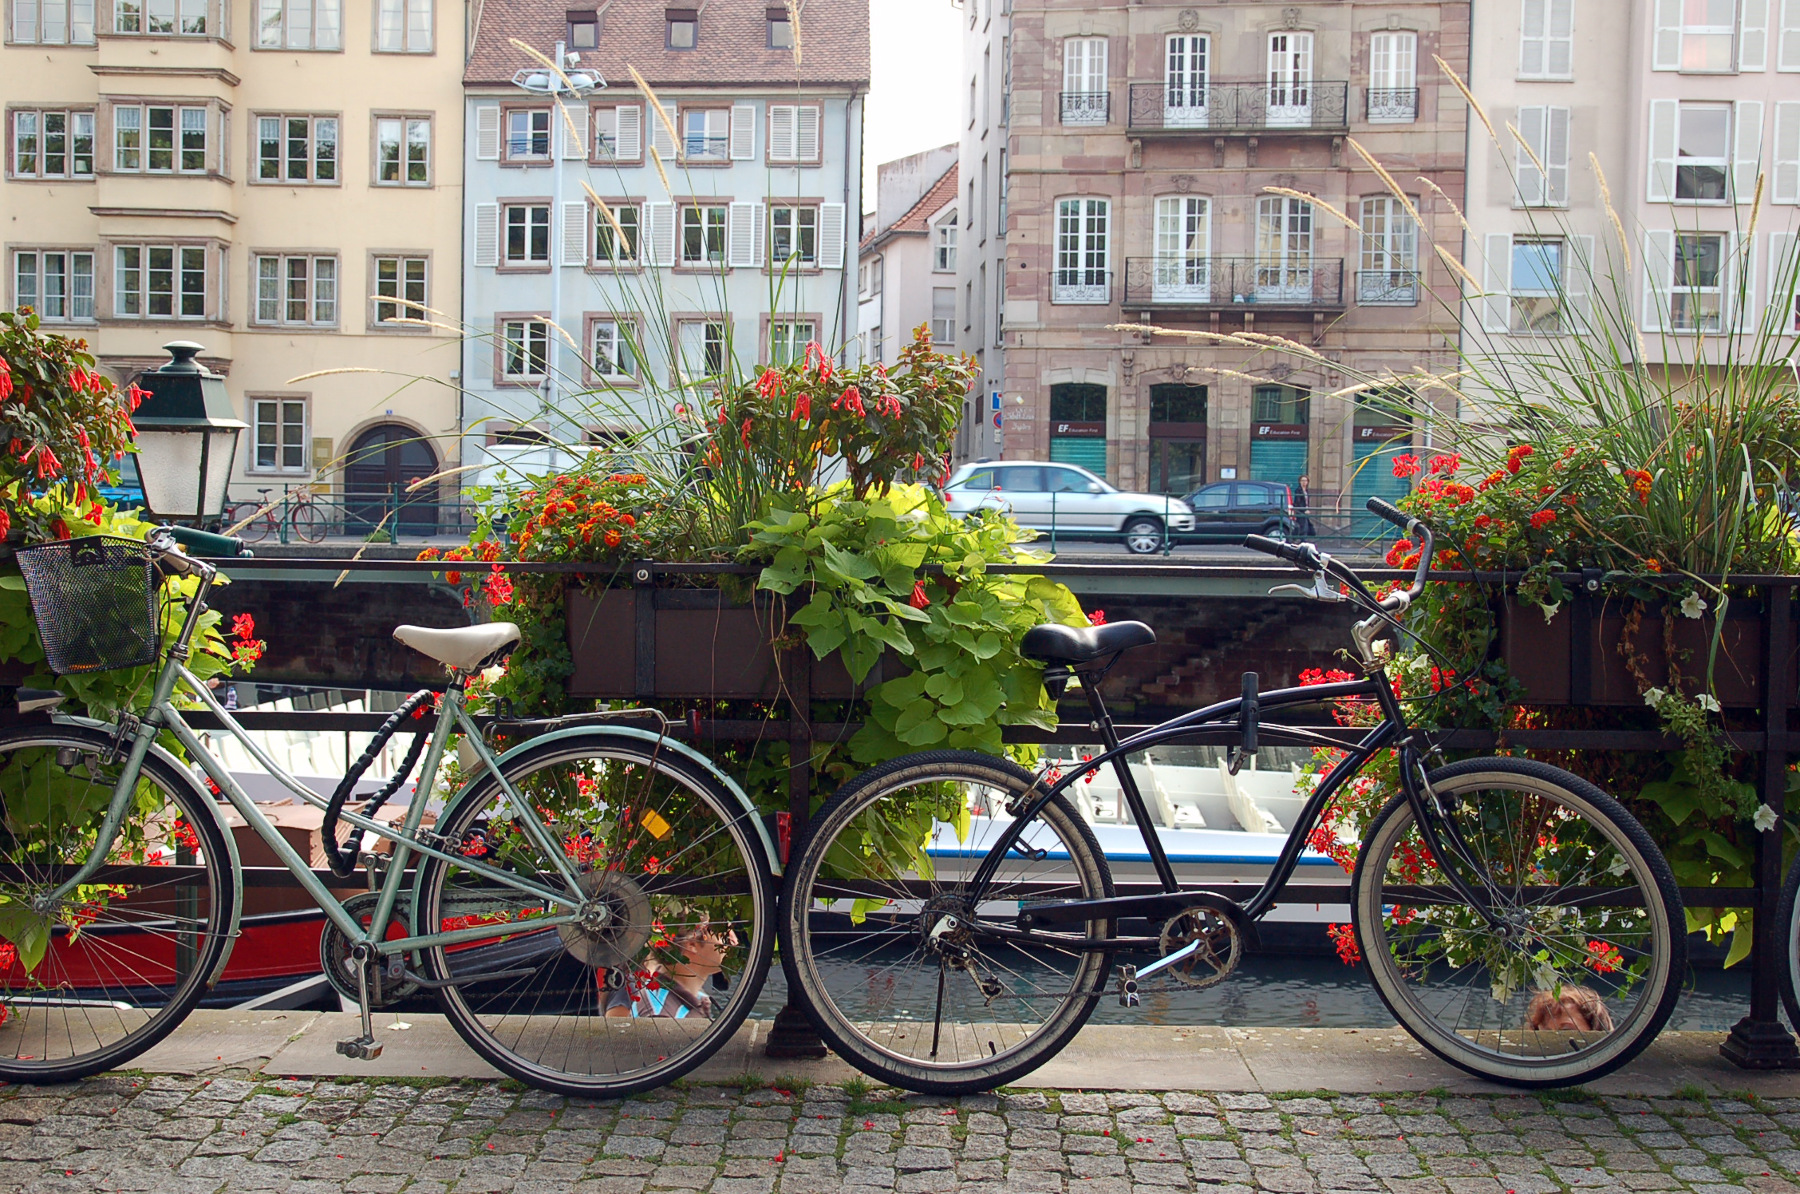 Bikes along the river in Strasbourg, France.